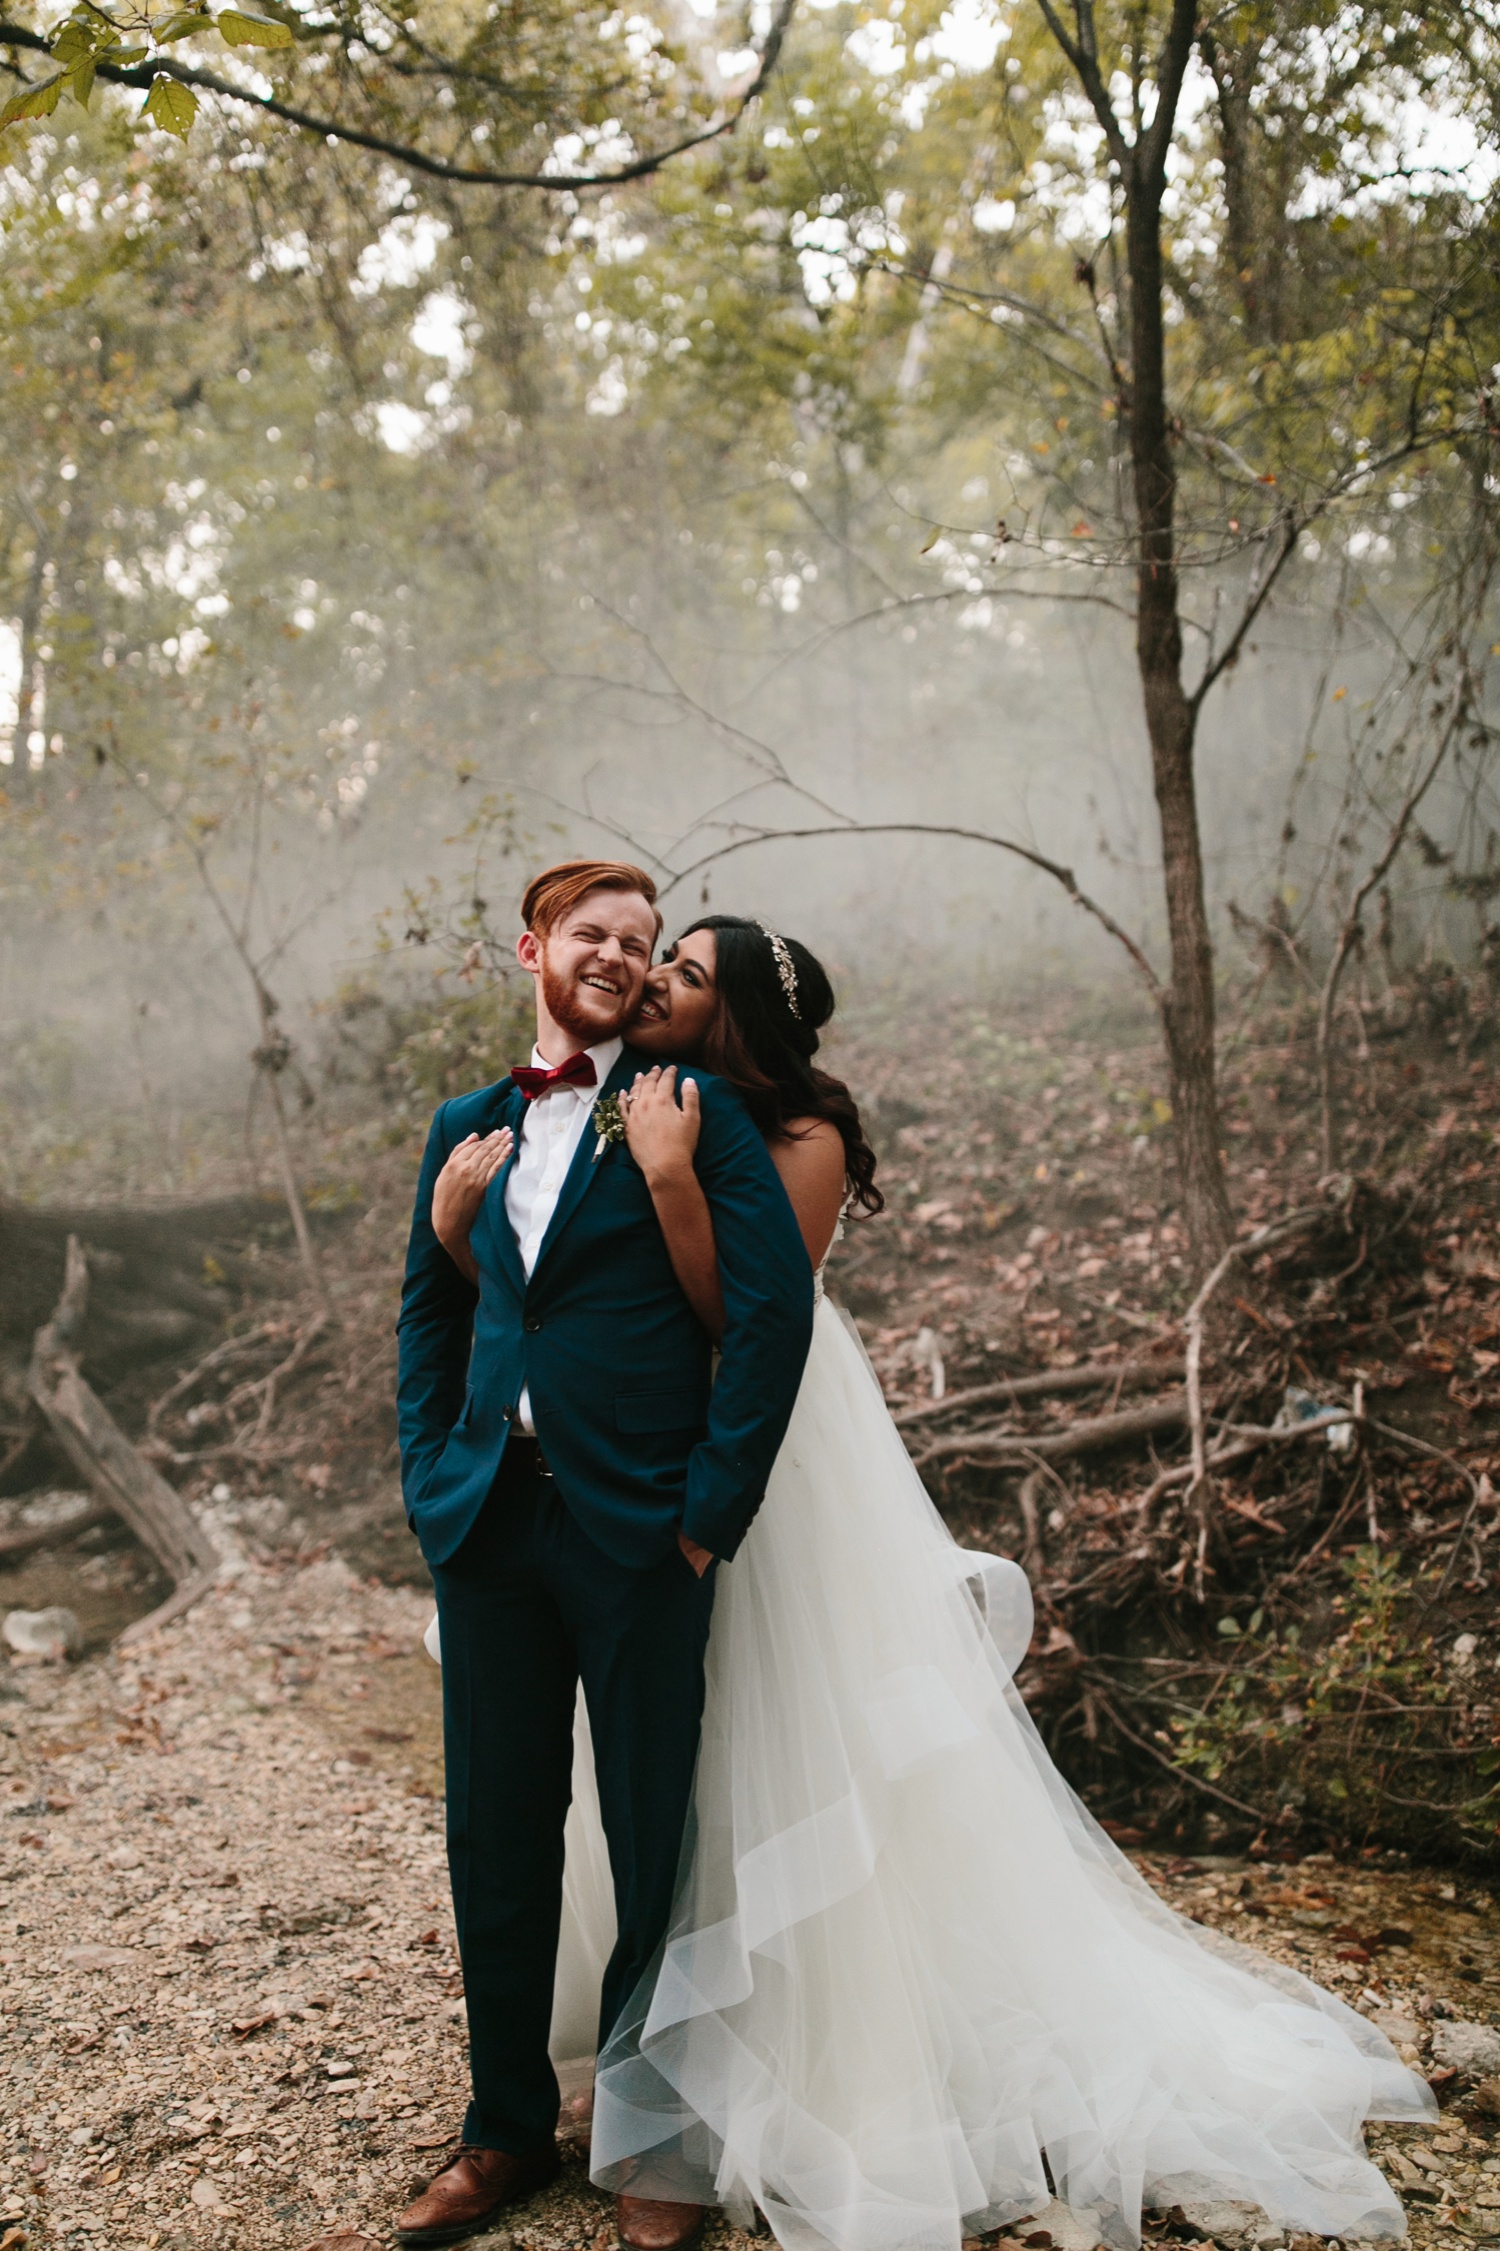 Grant + Lysette | a vibrant, deep burgundy and navy, and mixed metals wedding at Hidden Pines Chapel by North Texas Wedding Photographer Rachel Meagan Photography 257